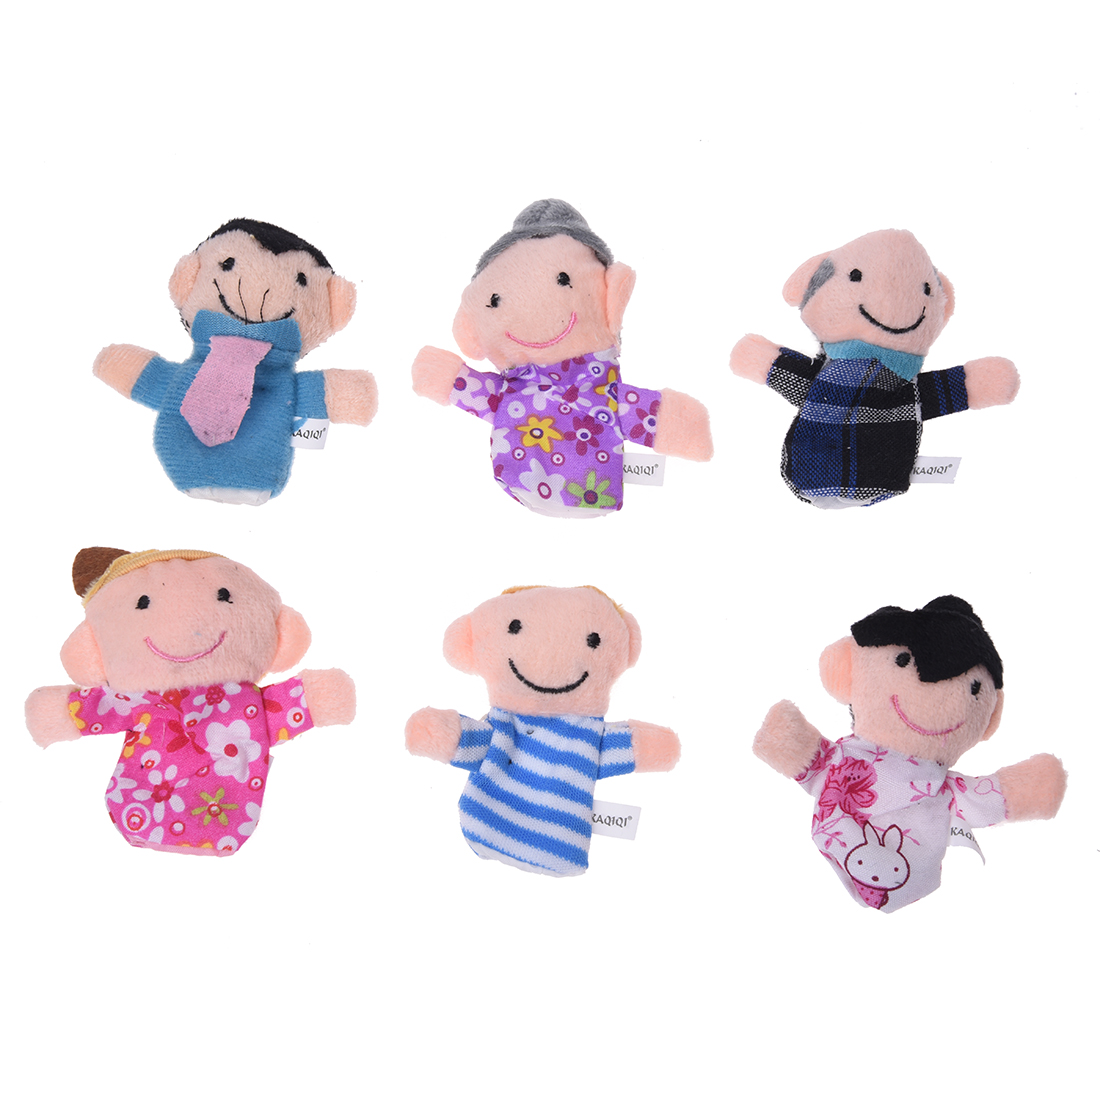 MYMF Best Sale 6Pcs Family Finger Puppet Cloth Baby Childs Kid Play Learn Story Helper Toy Doll